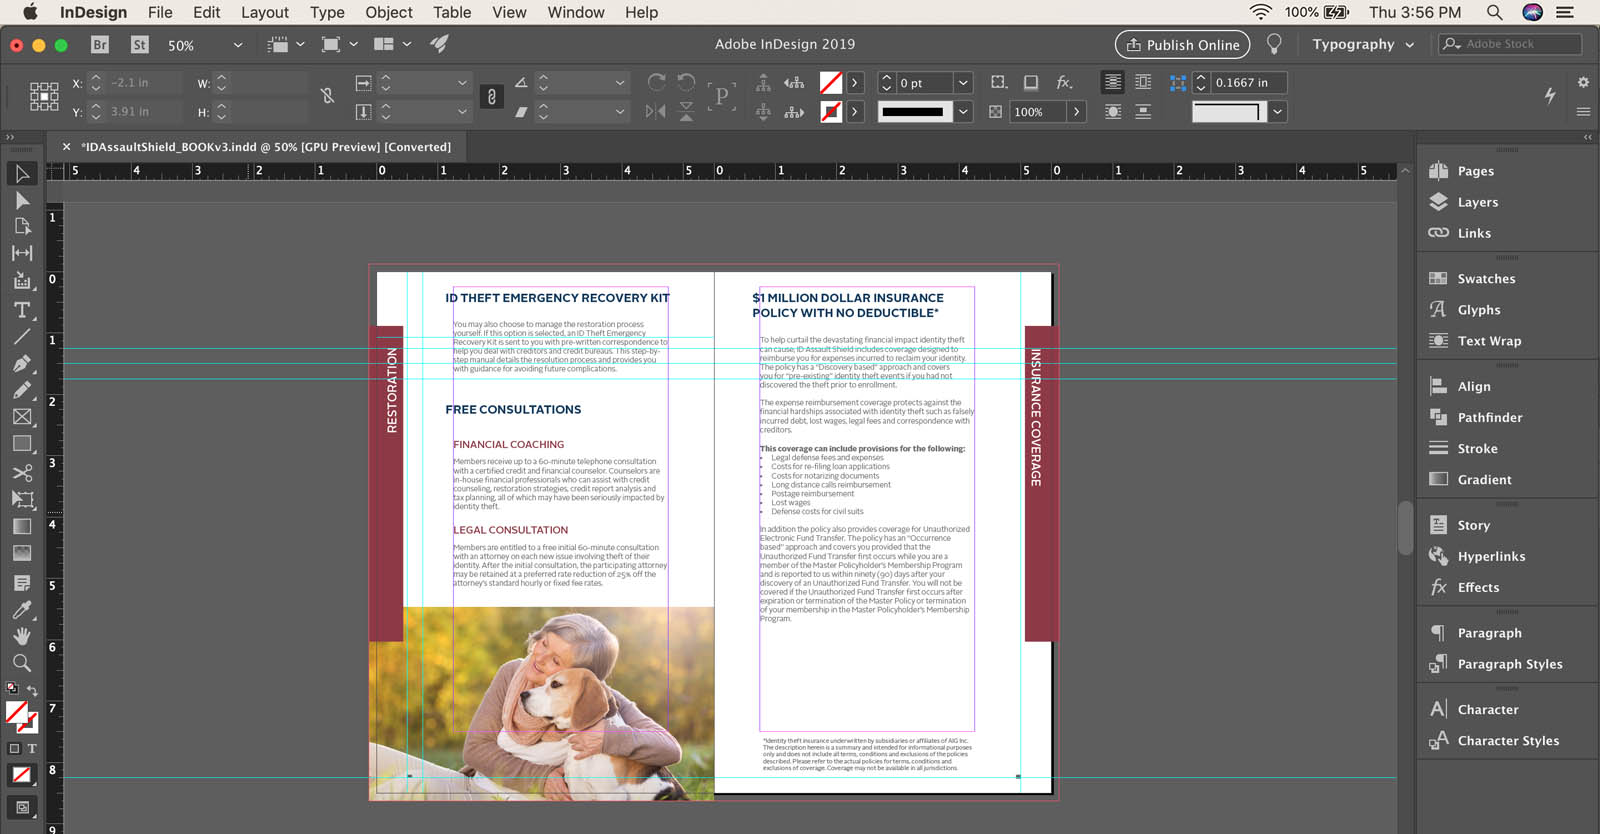 How to export a single page from InDesign